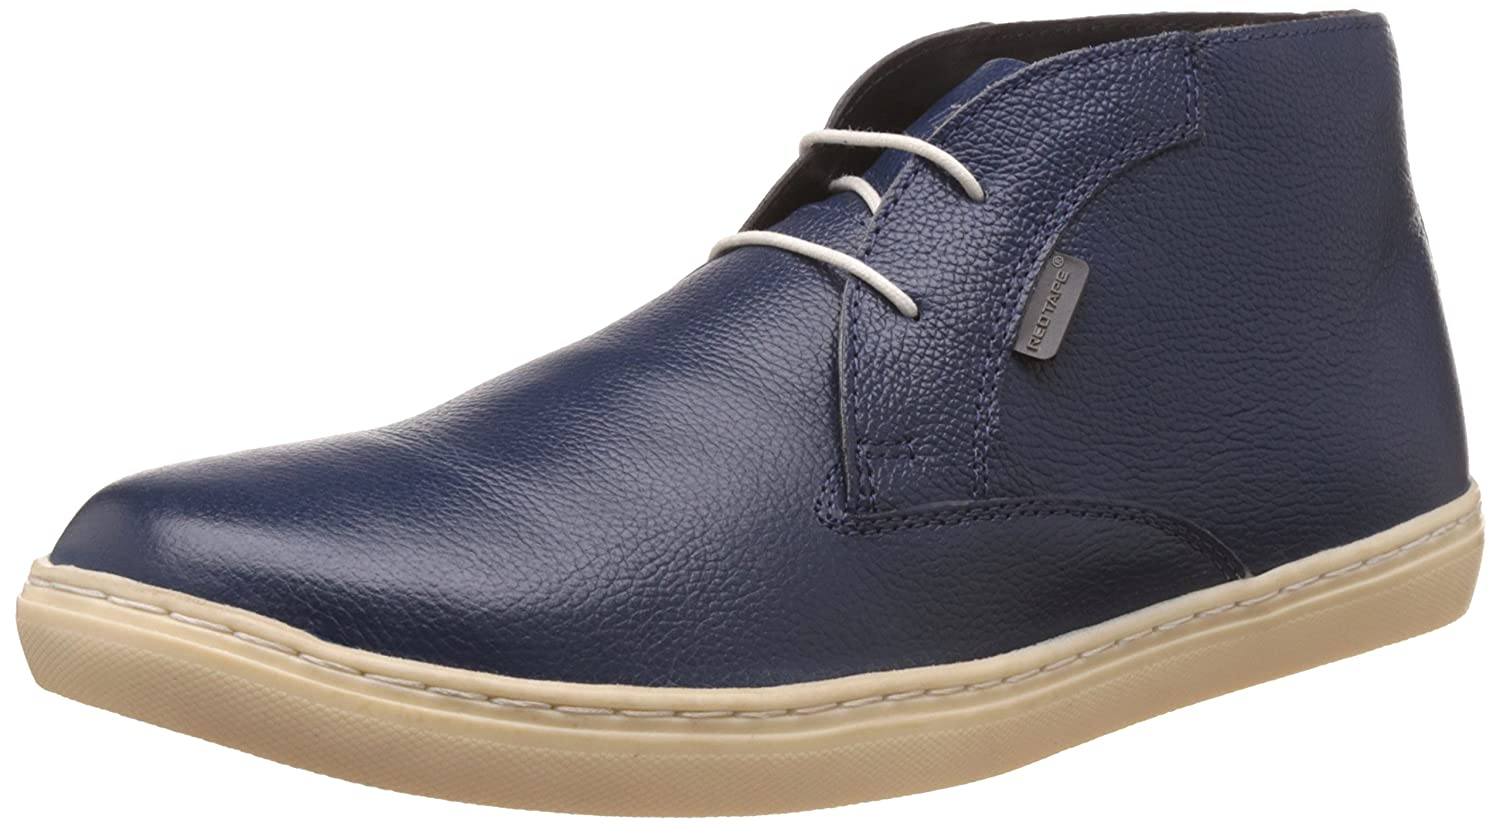 Red Tape Men's Leather Chukka Boots